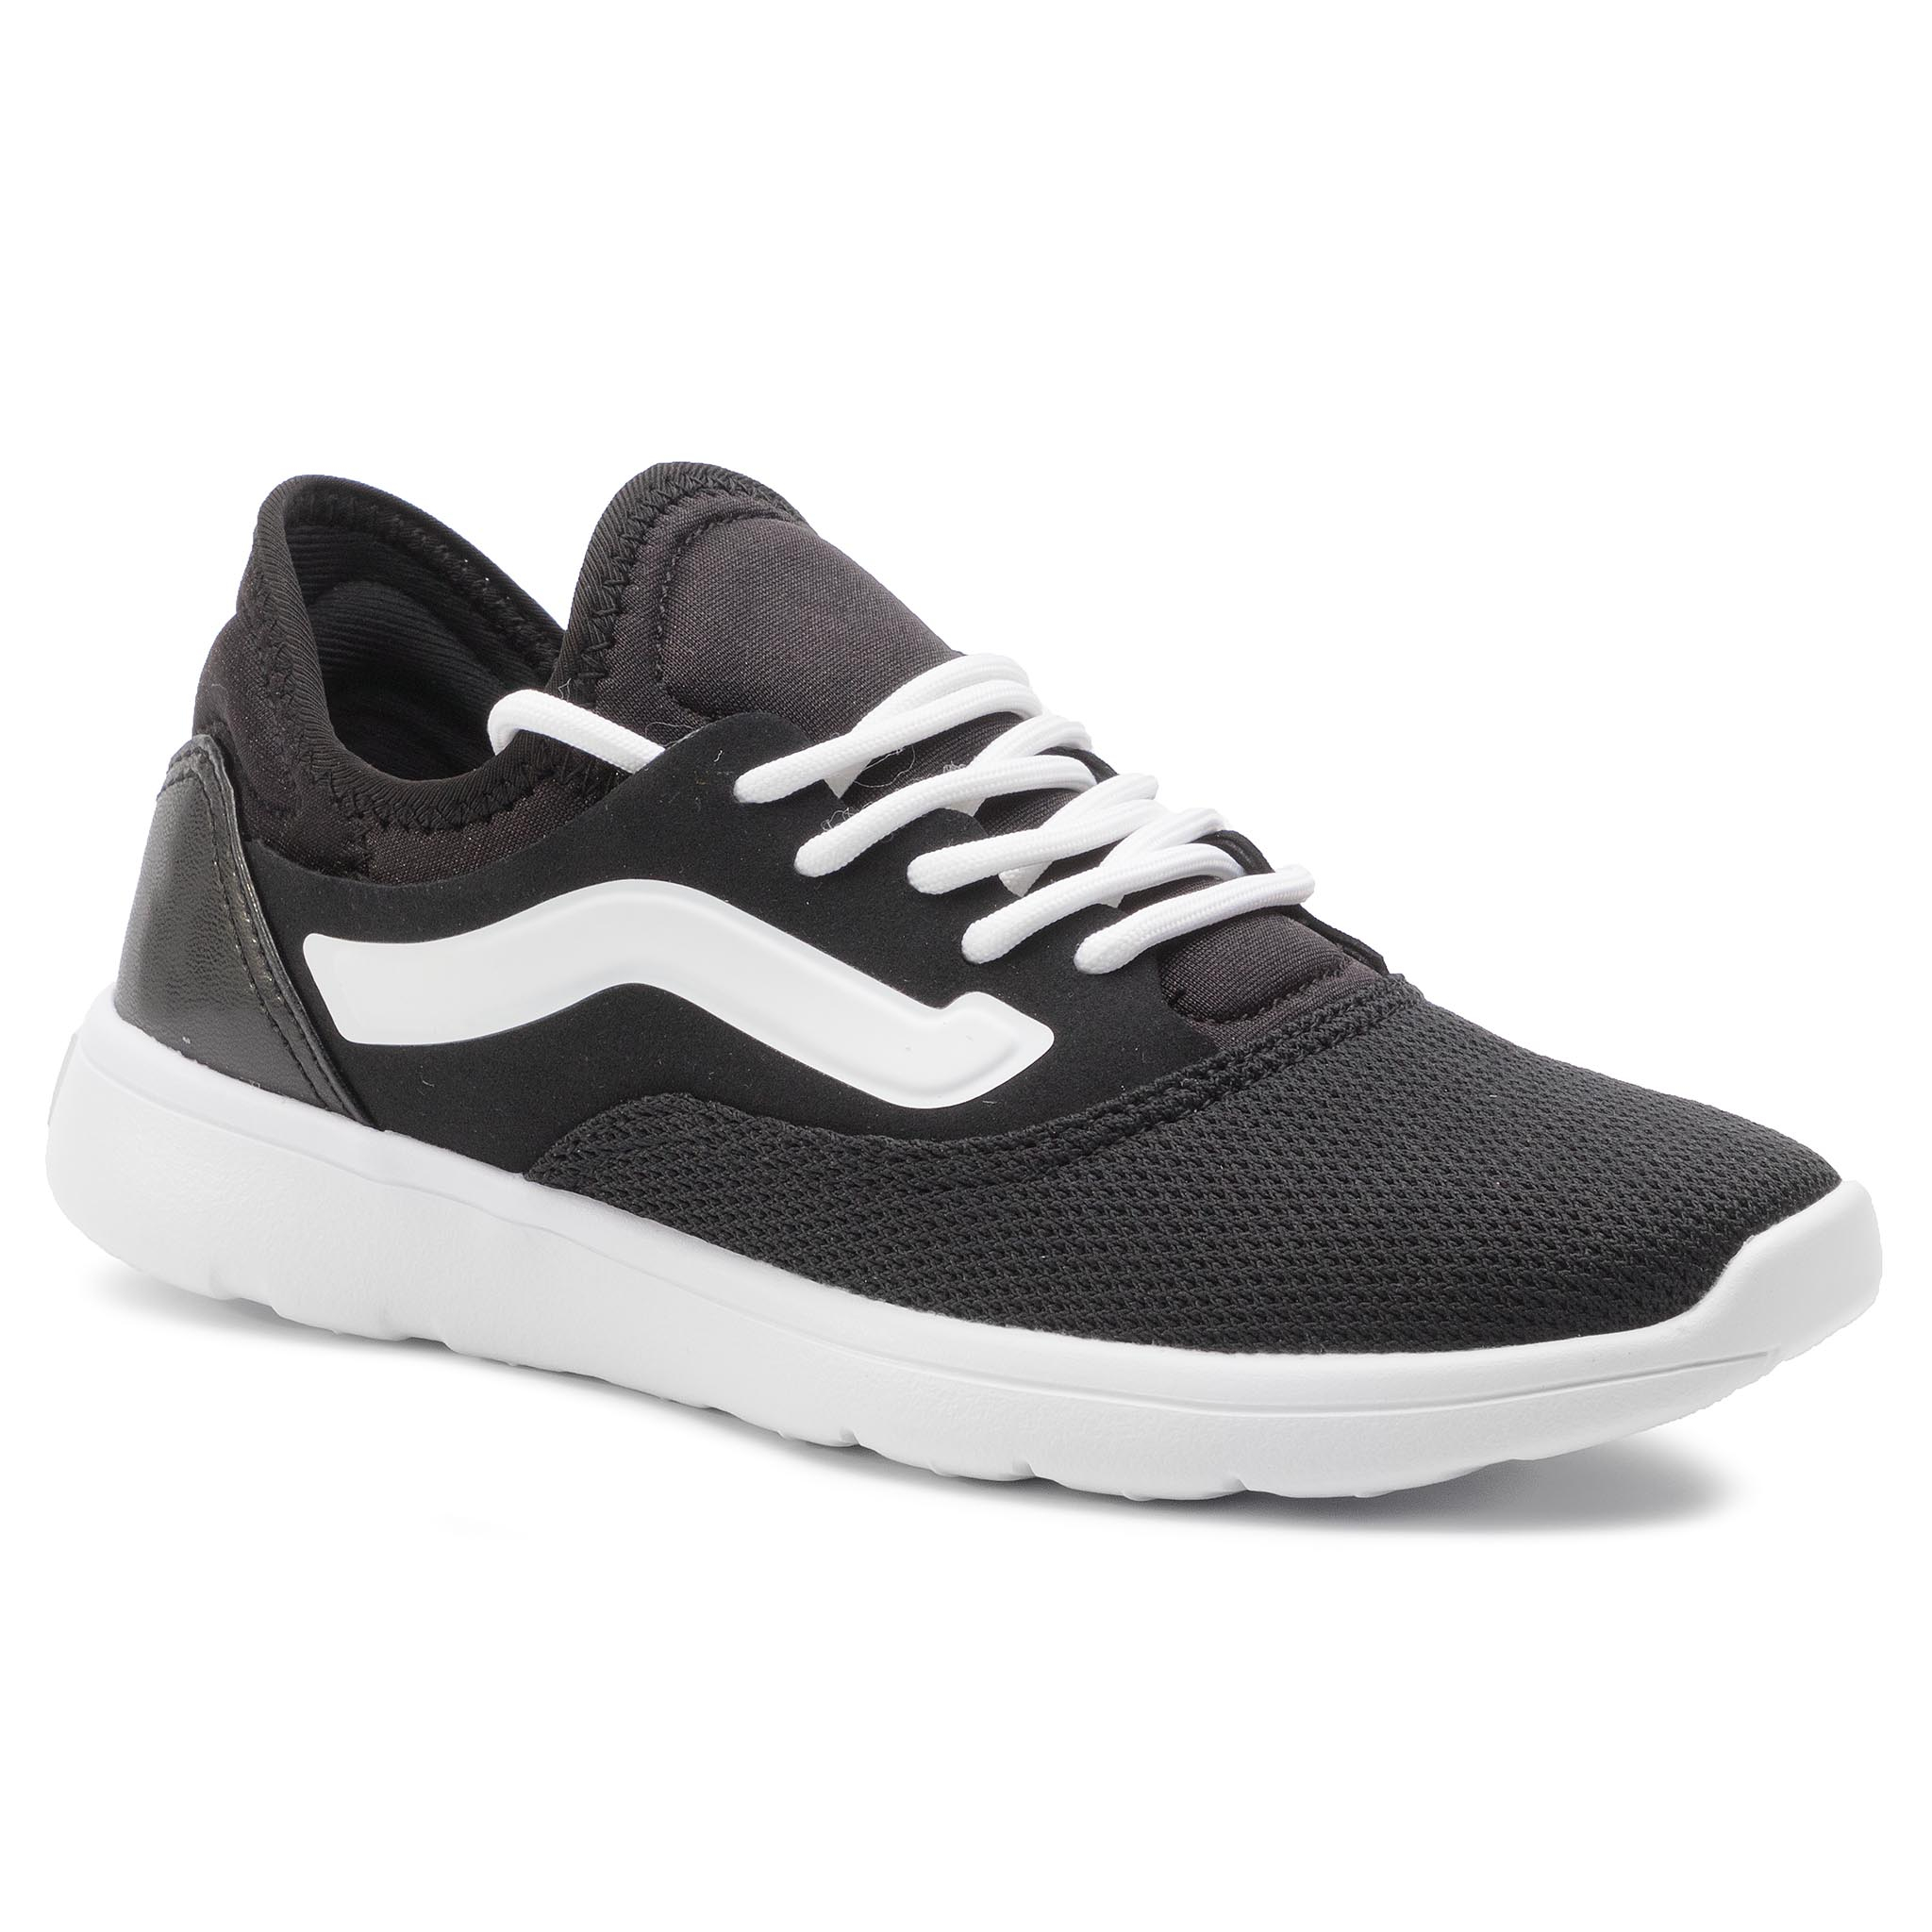 Sneakers VANS - Iso Route Staple VN0A3TKEOS7 (Staple) Black/True White